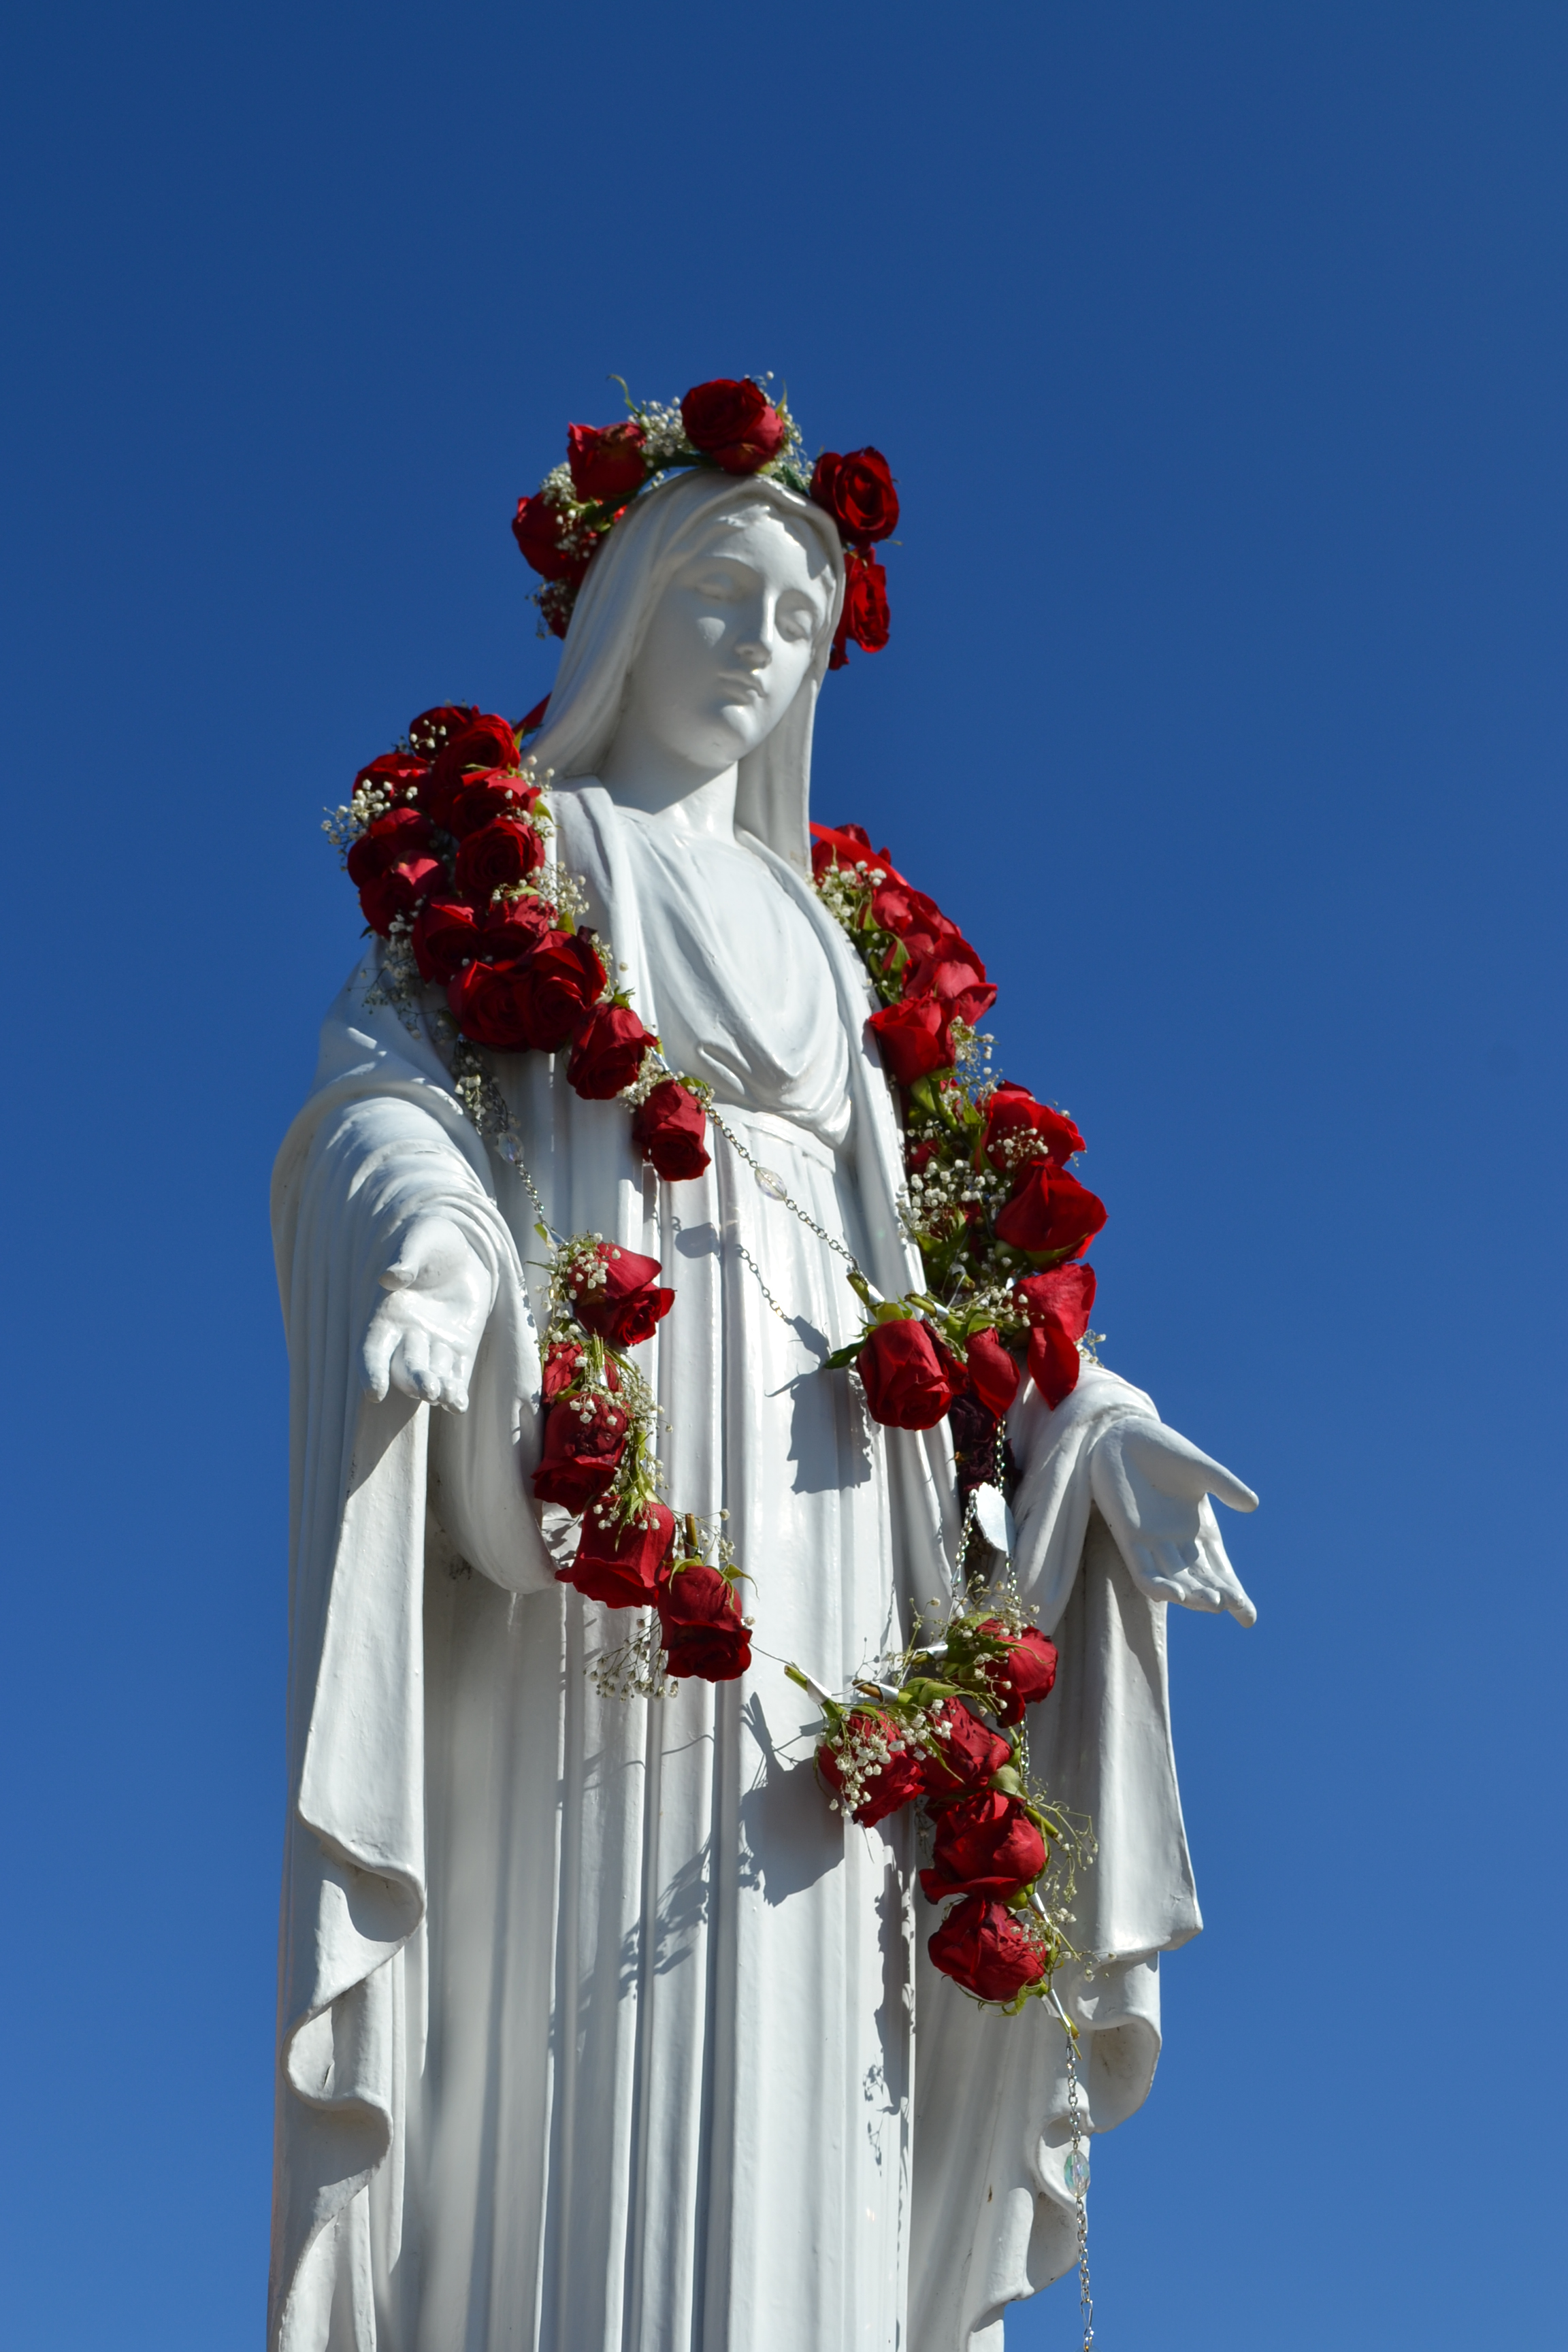 Statue of Mary in Grotto of Mater Dei High School - by Gzamora1, 19 November 2012 (Statue_of_mary_in_grotto_of_mater_dei_high_school.jpg) (CC BY-SA 3.0 [https://creativecommons.org/licenses/by-sa/3.0/deed.en]), via Wikimedia Commons